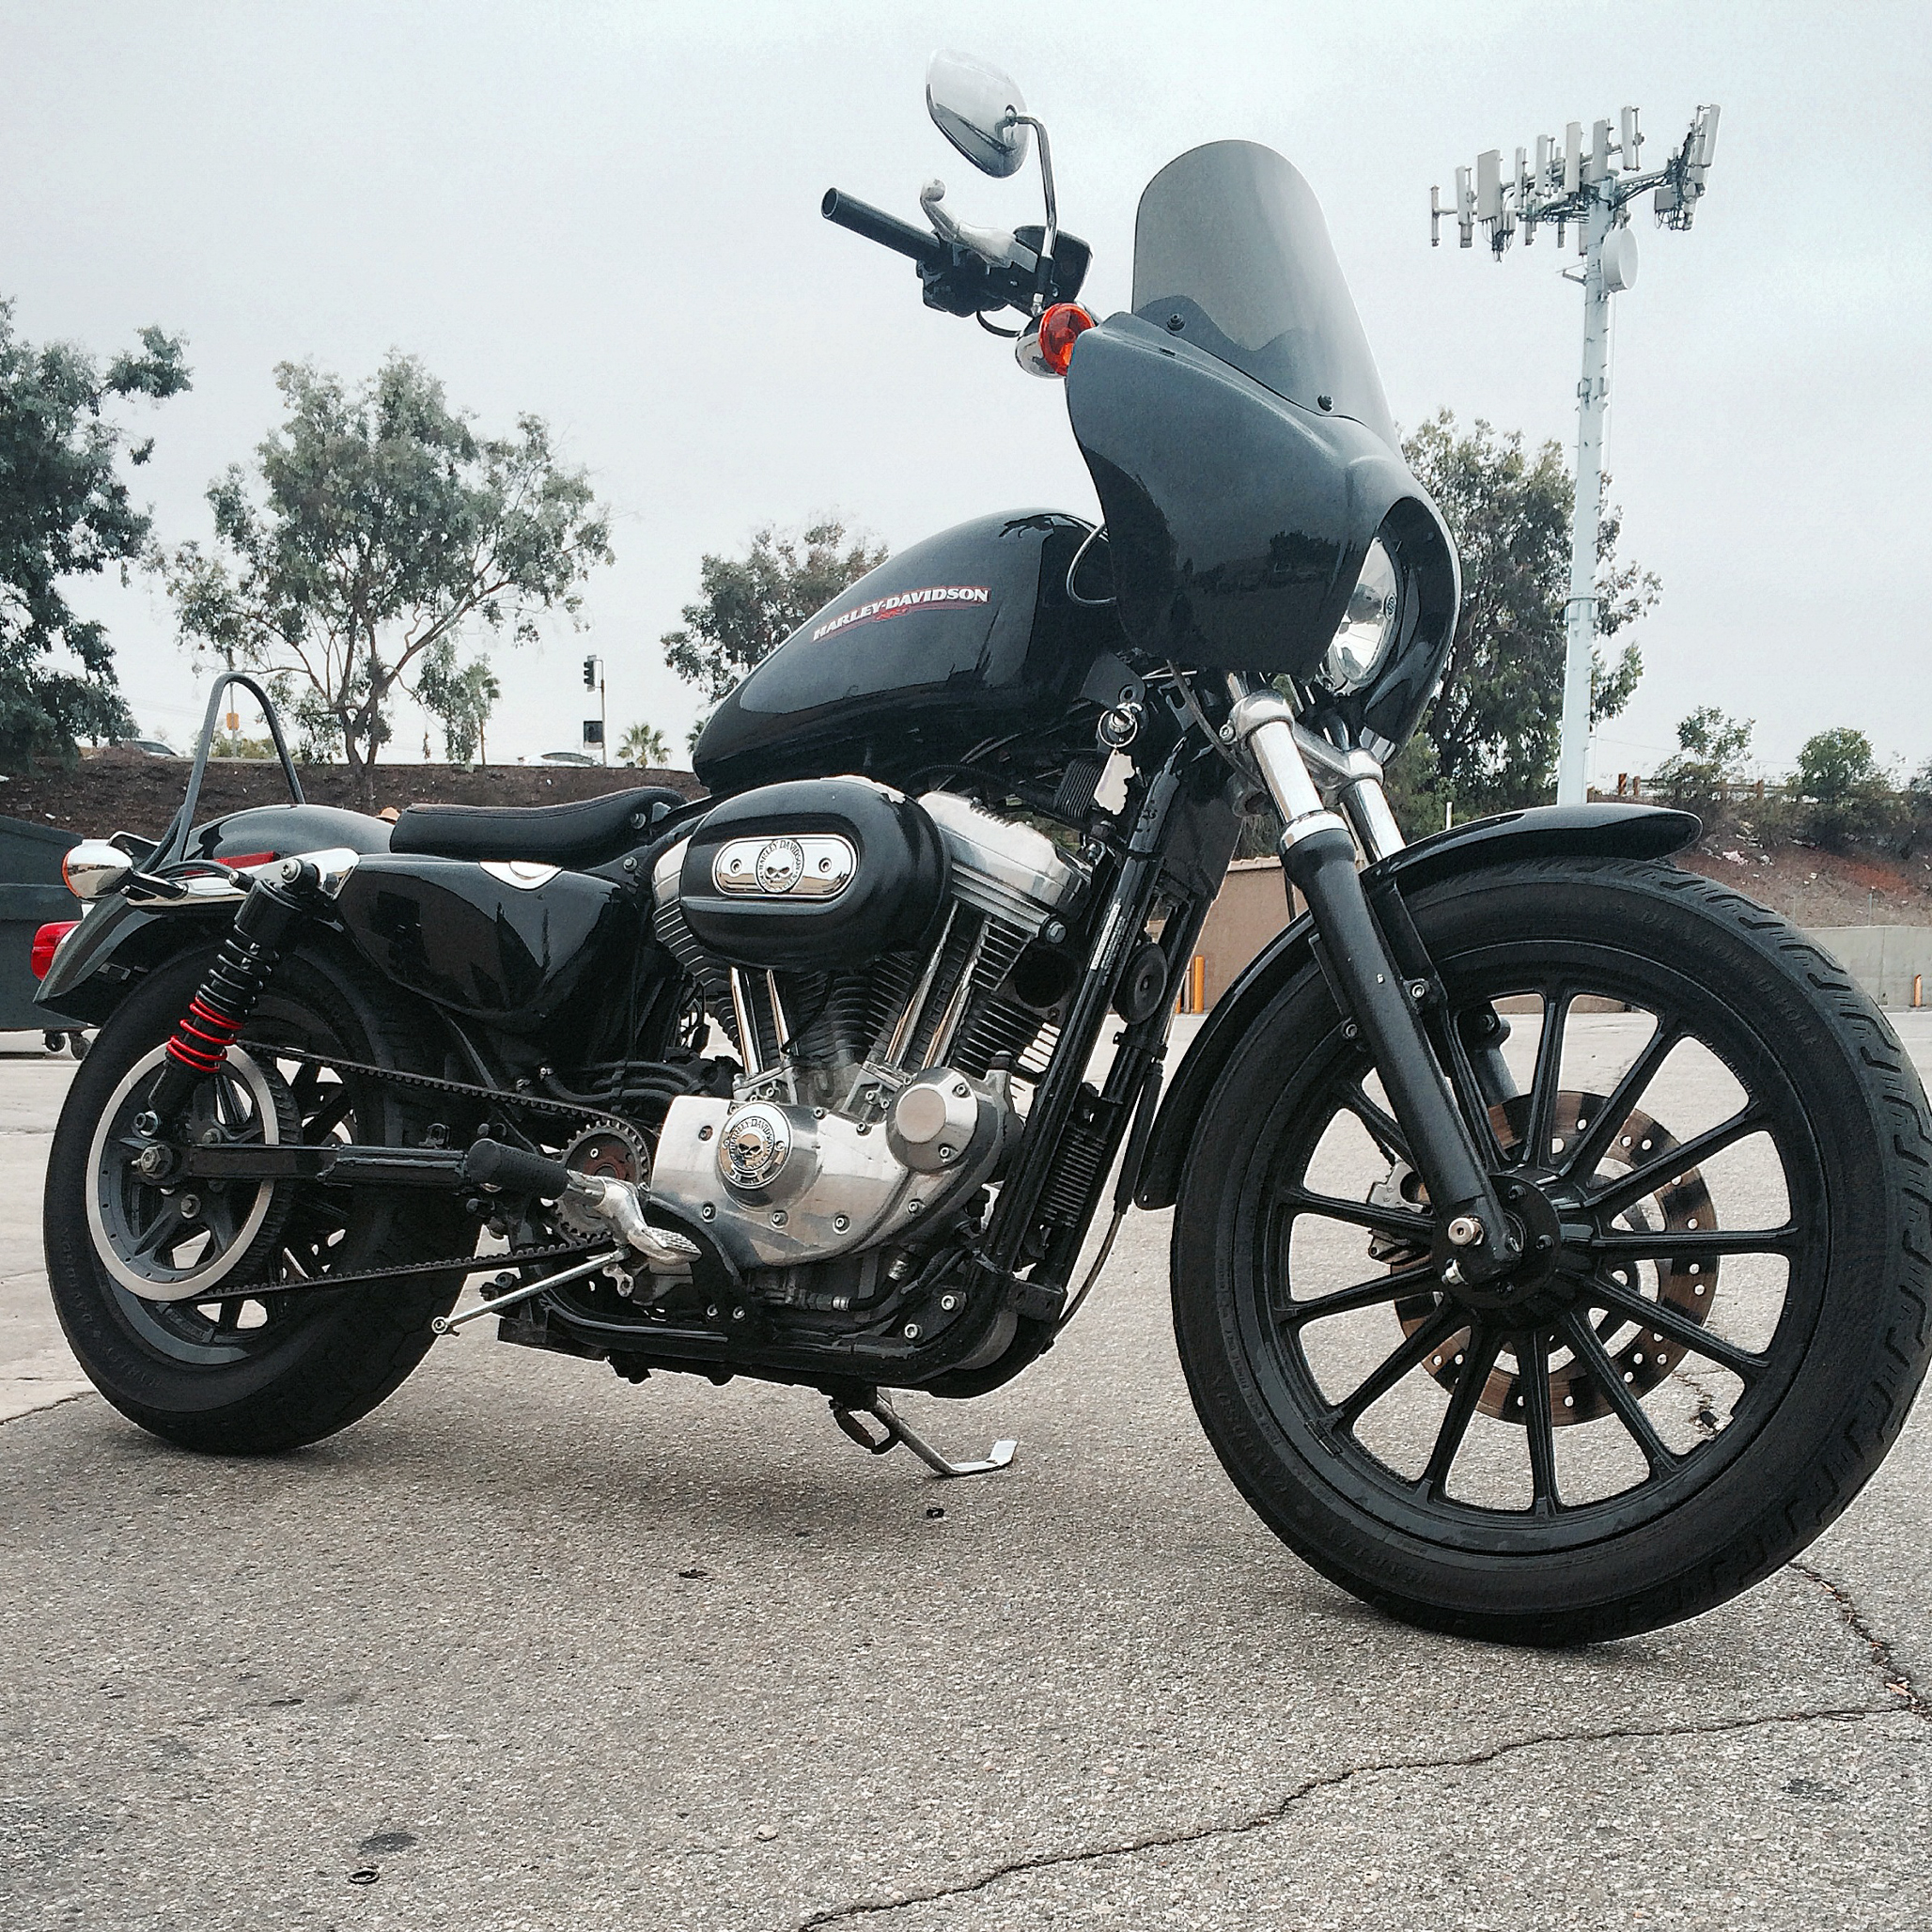 Best motorcycle handlebars - Raiderperformance For Owners And Riders Of The Yamaha Star